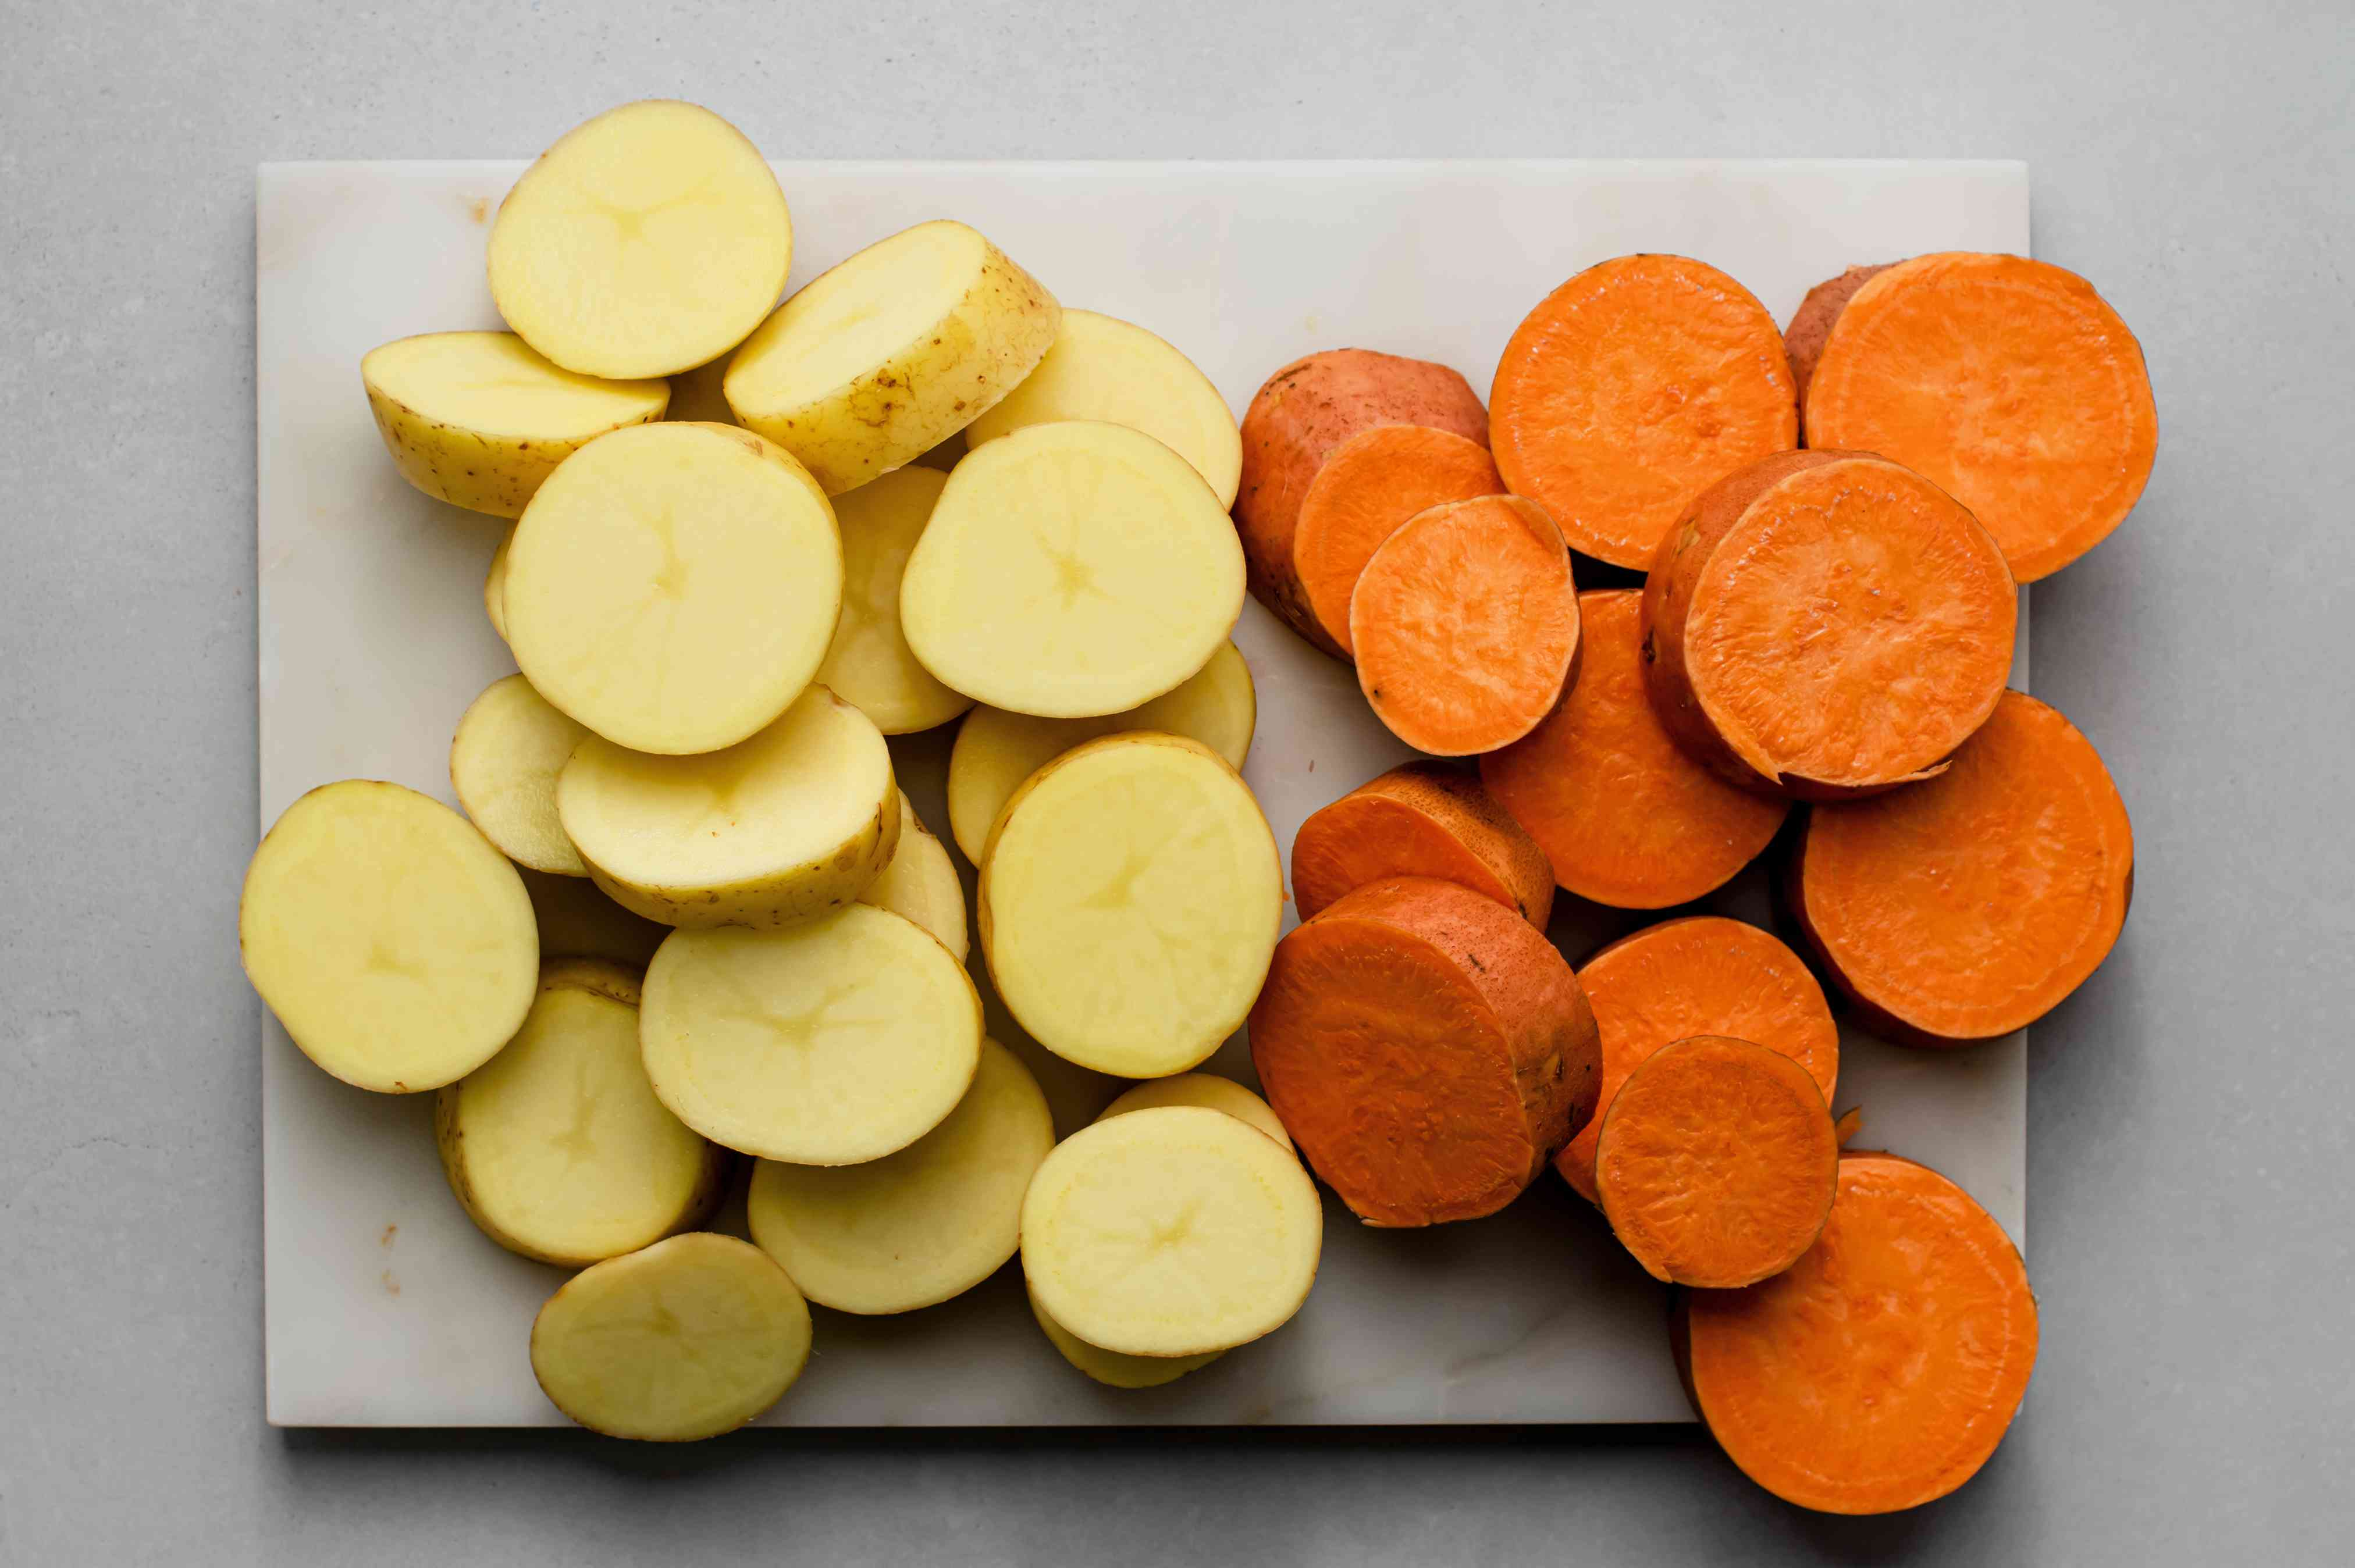 White and sweet potatoes cut into 1-inch-thick slices